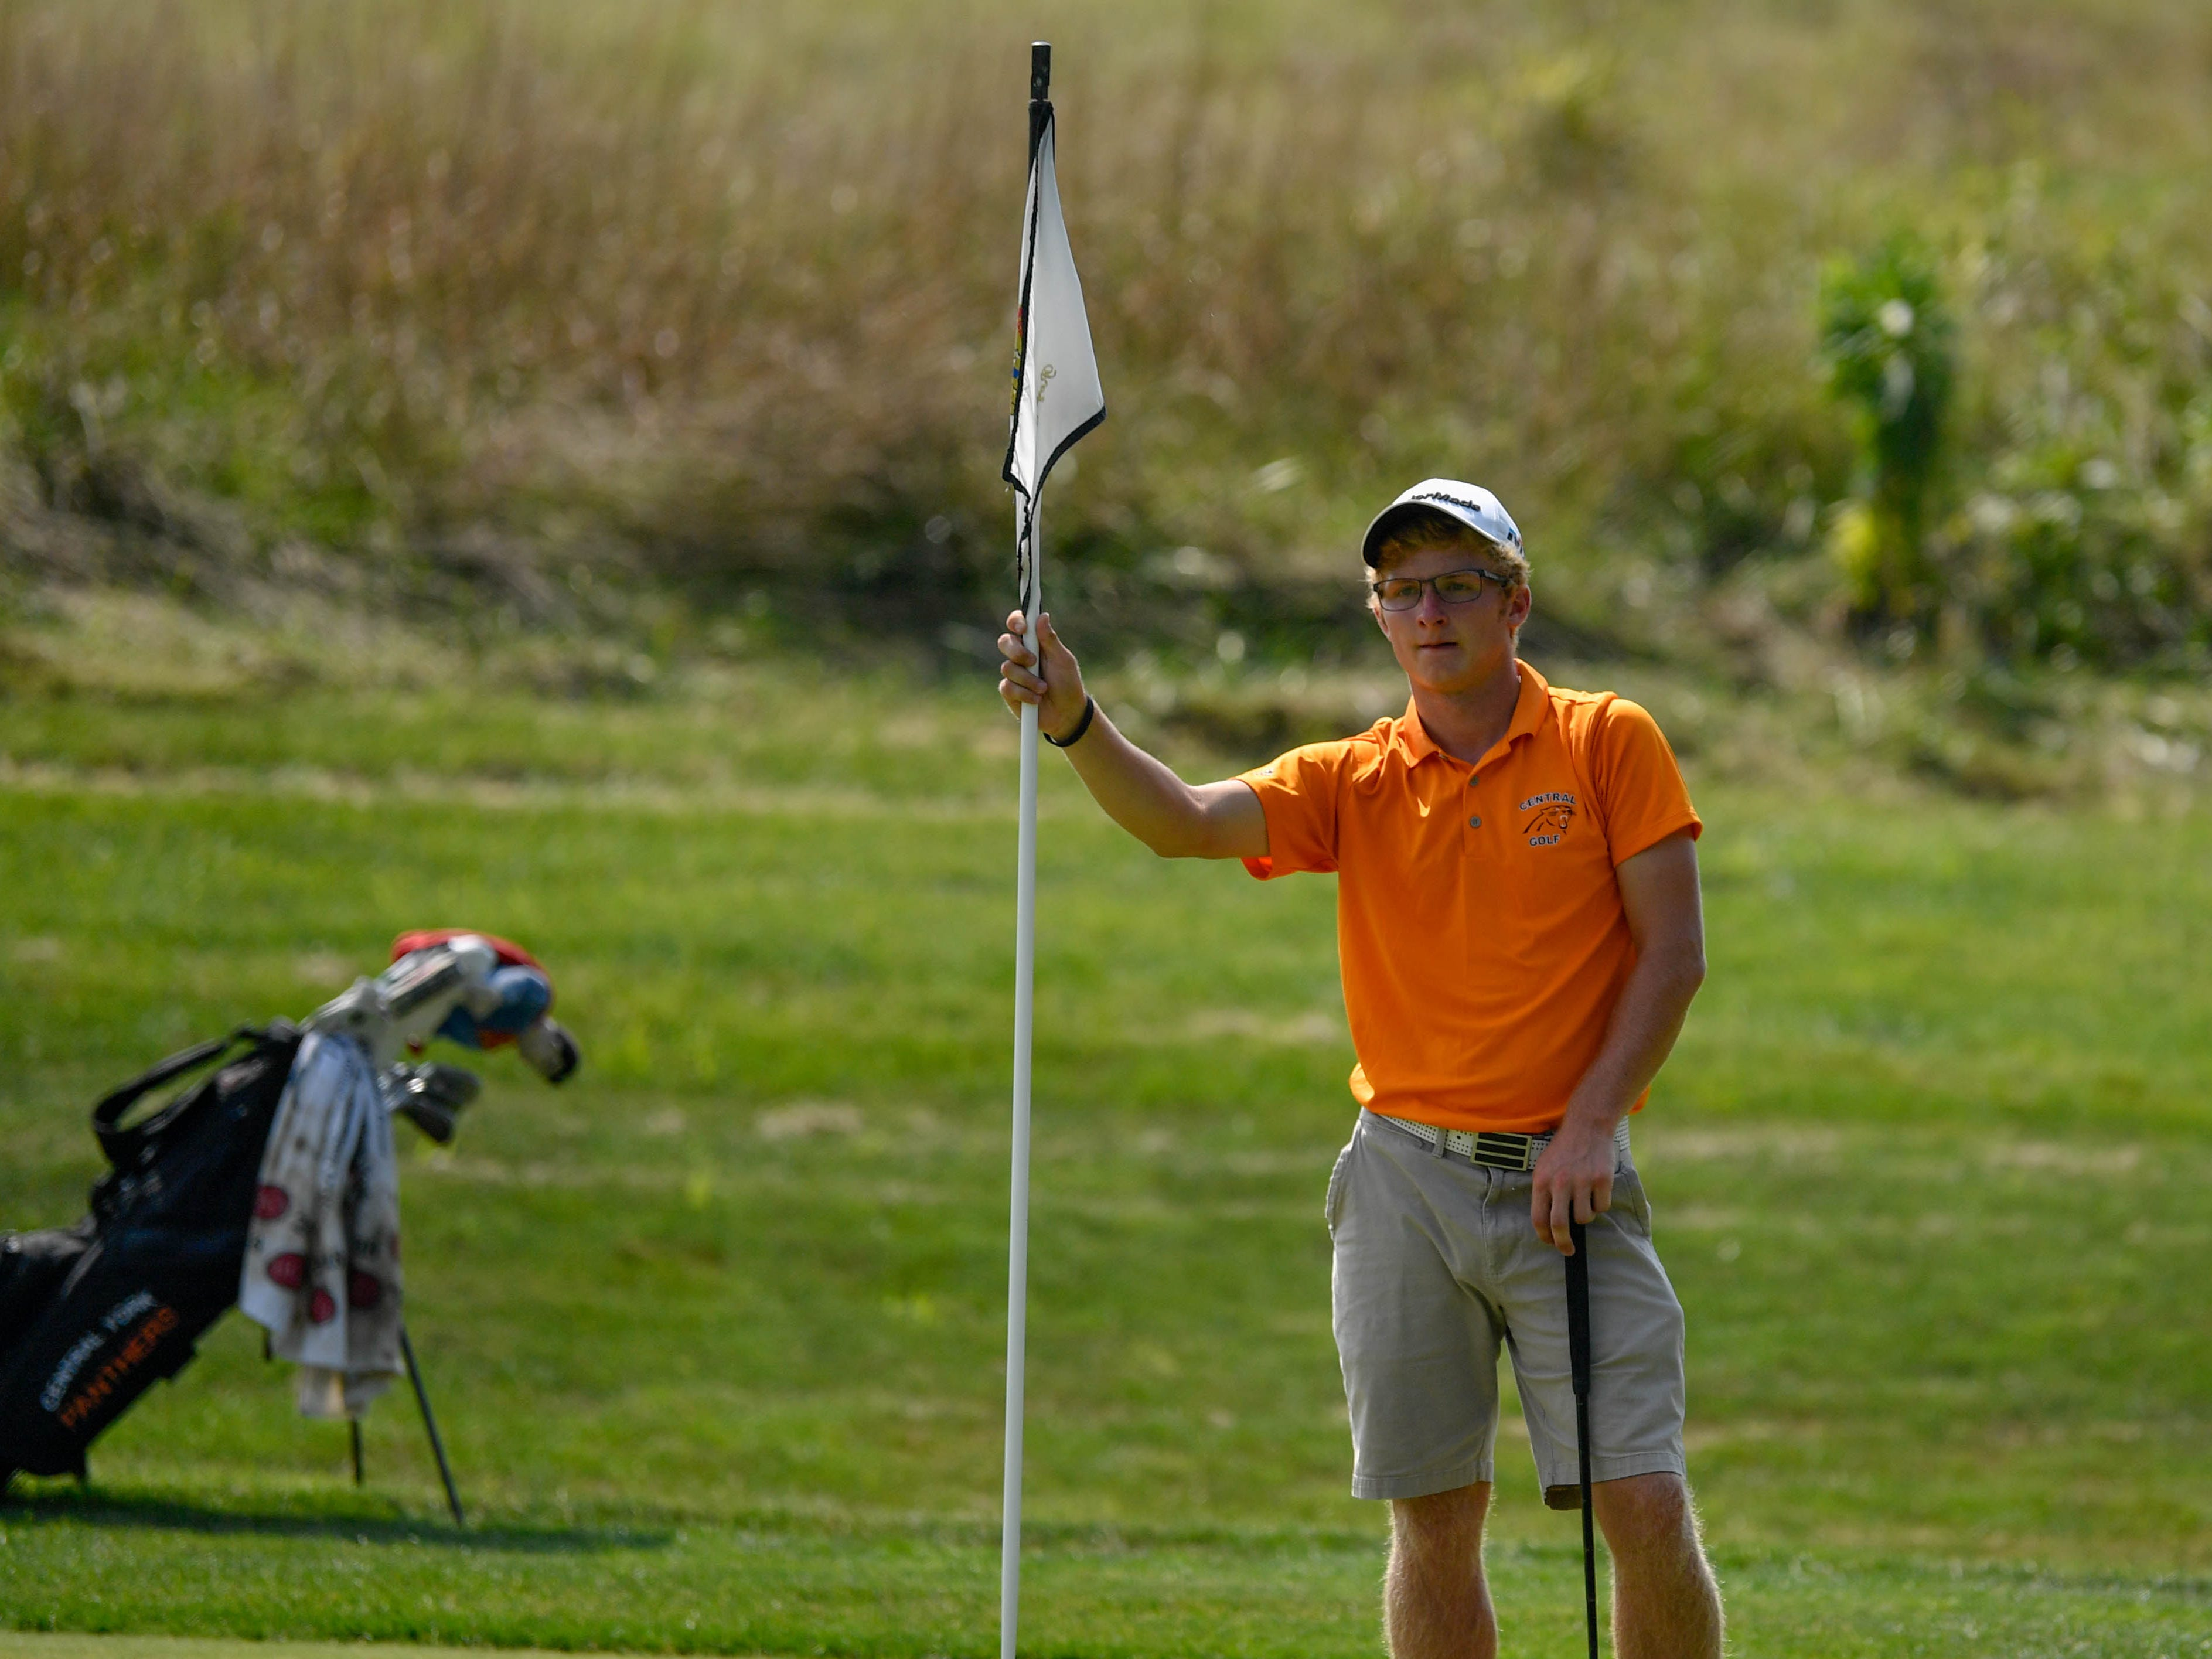 Central York's Carson Bacha tends the flag for an opponent during a division I golf match at Royal Manchester Golf Links, Wednesday, Aug. 16, 2018.